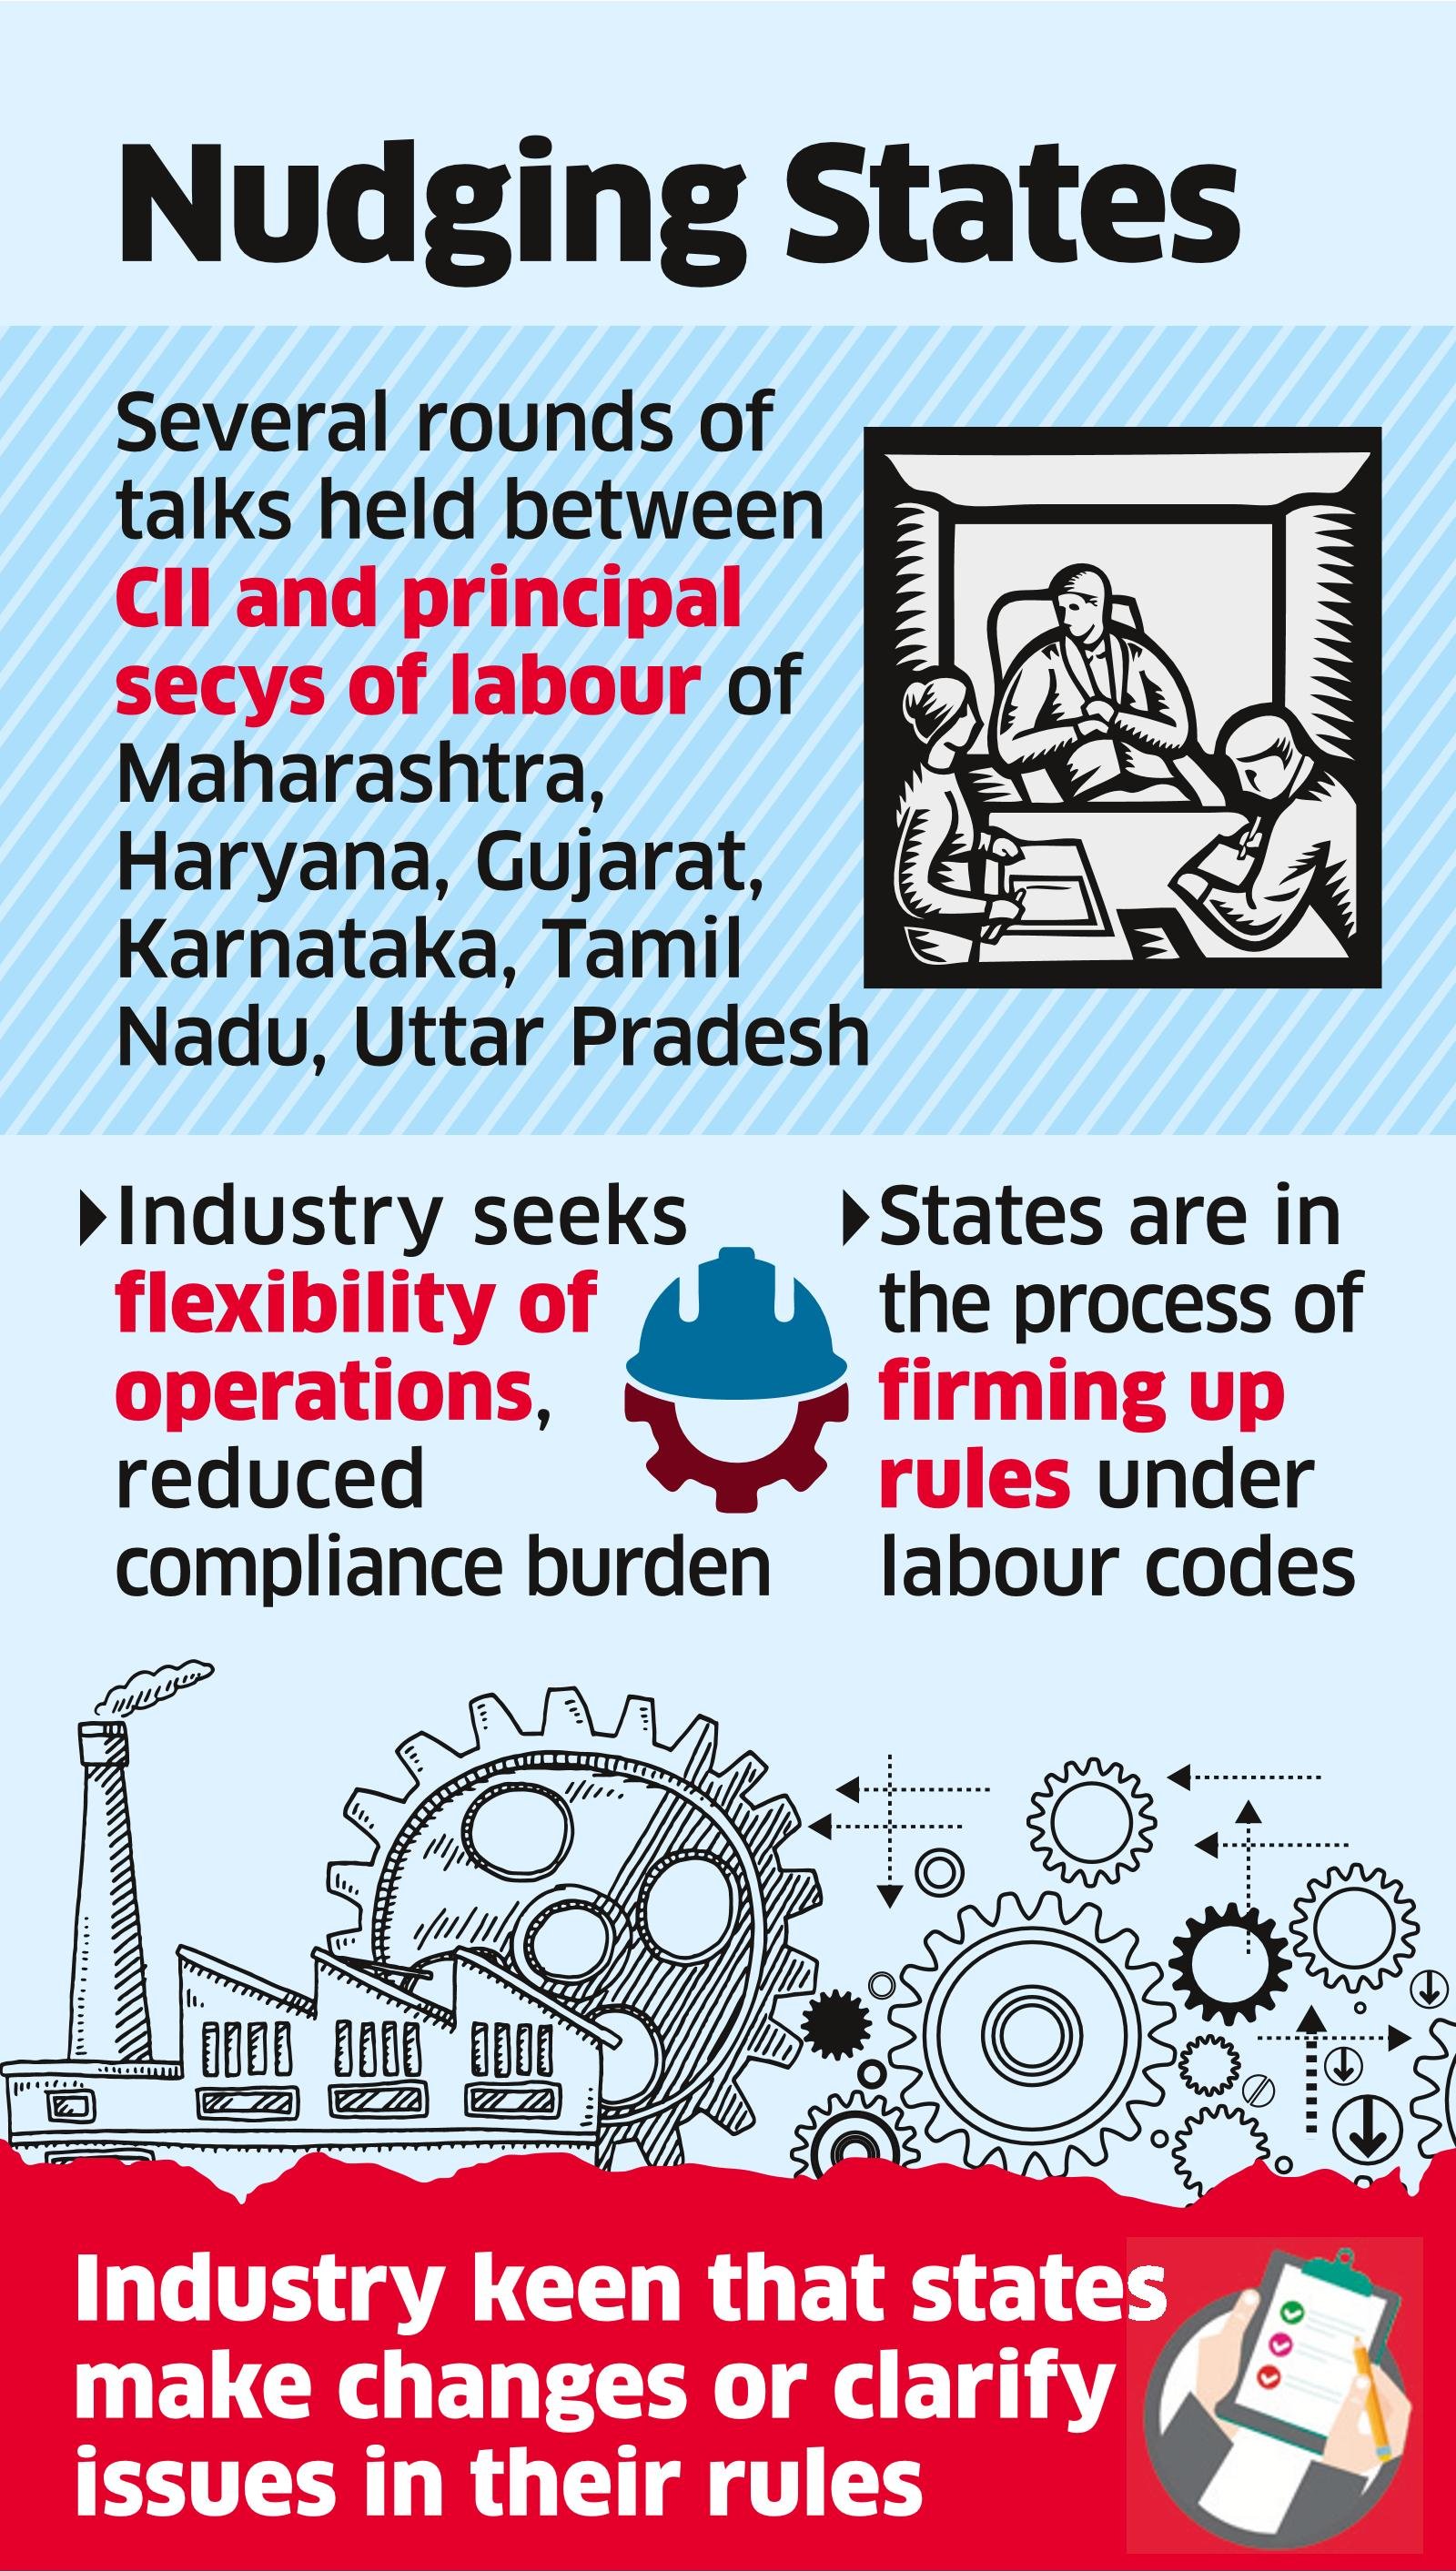 India Inc Approaches States on Labour Law Framework, Seeks Less Compliance